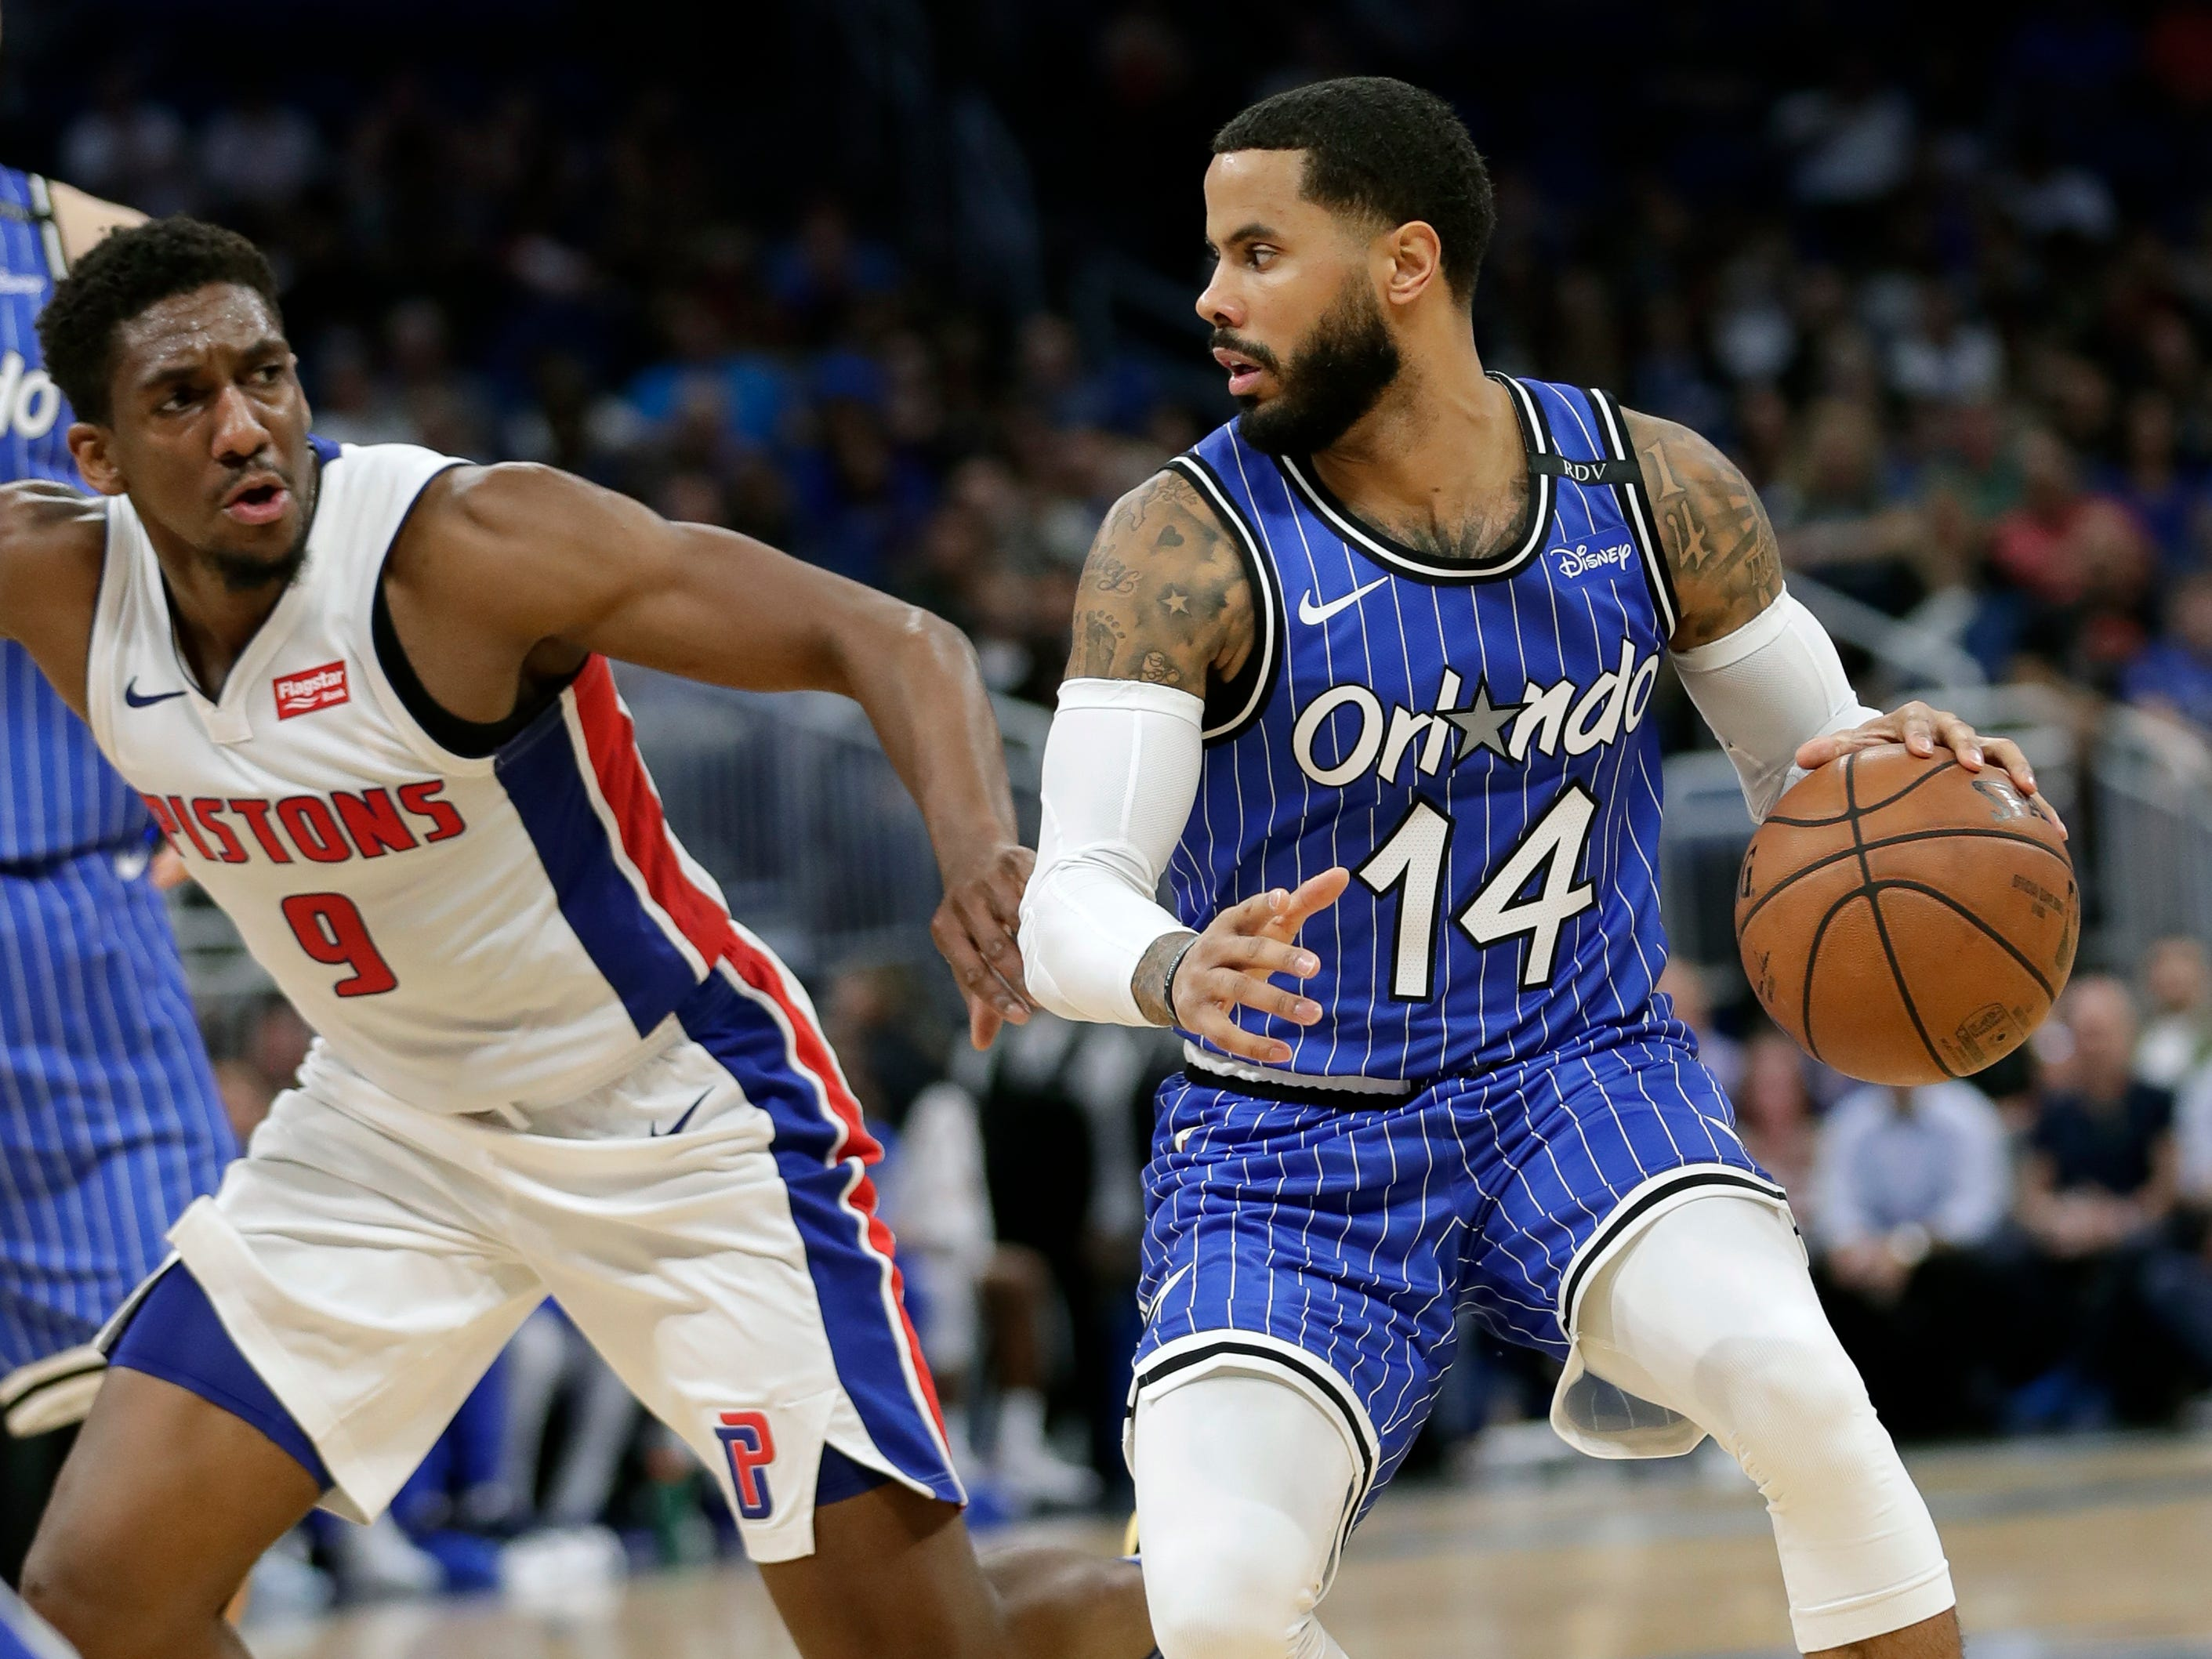 Orlando Magic's D.J. Augustin (14) looks for a way past Detroit Pistons' Langston Galloway (9) during the second half of an NBA basketball game, Wednesday, Nov. 7, 2018, in Orlando, Fla.